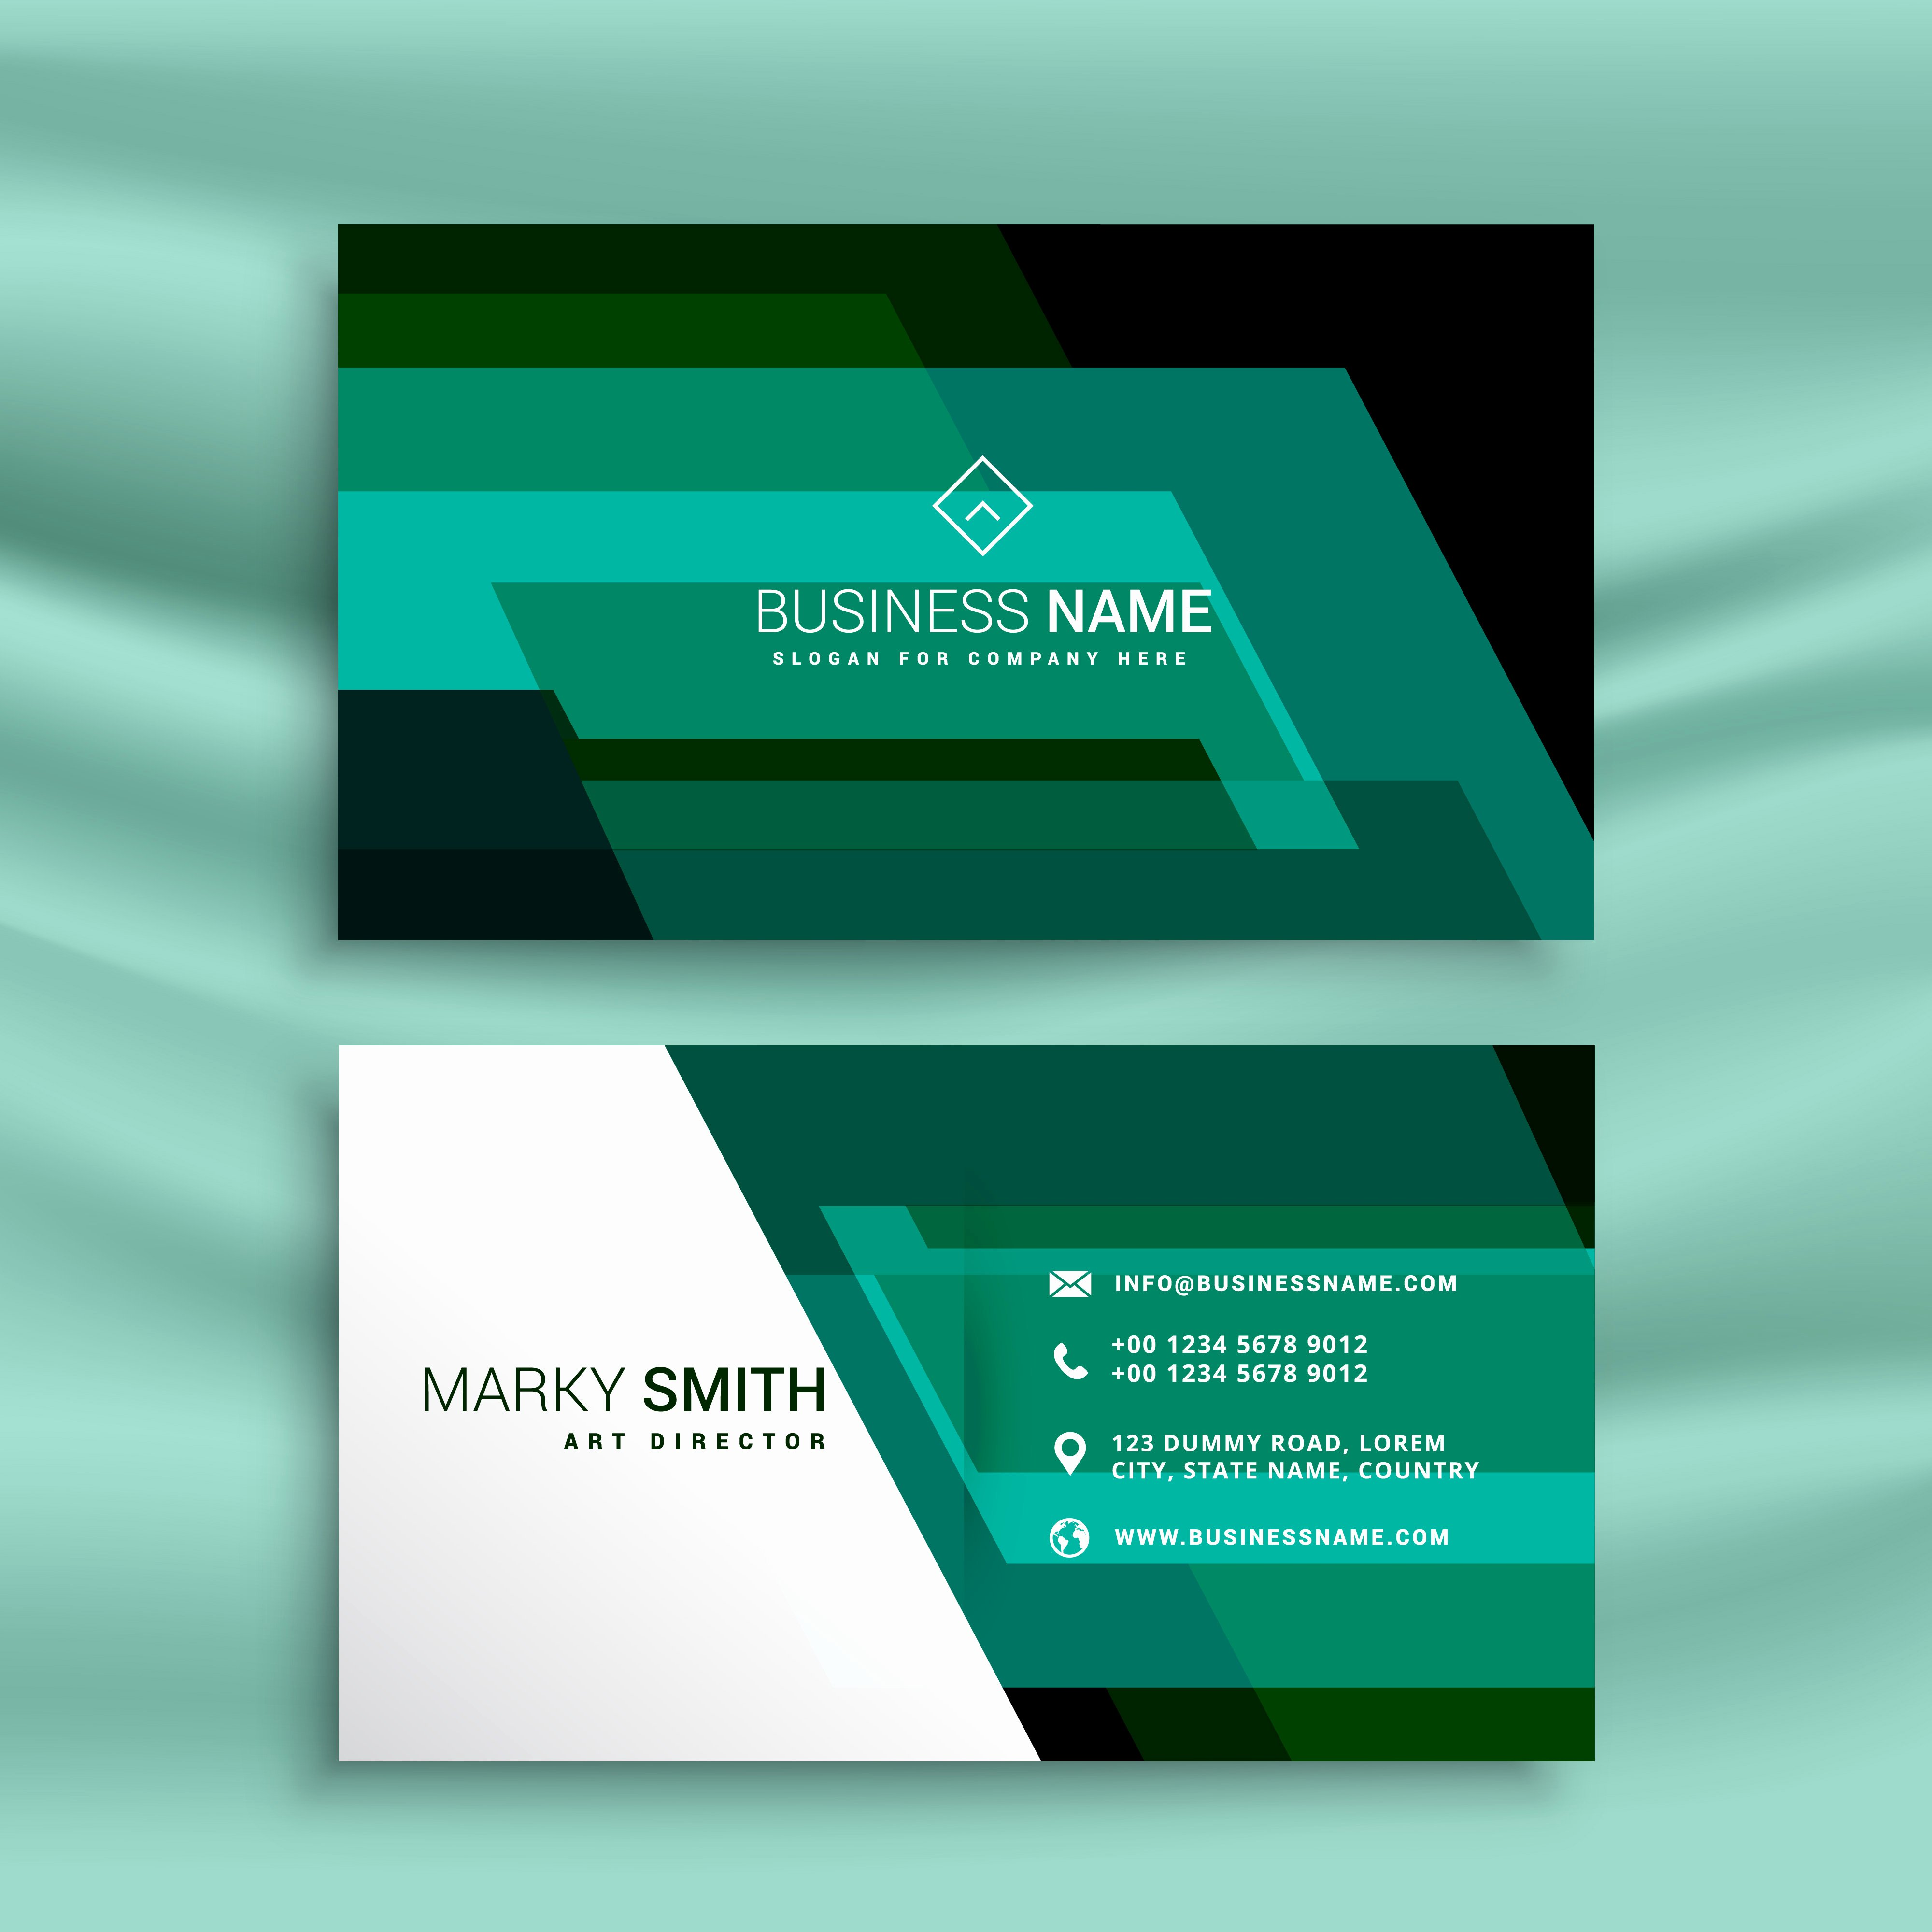 Business Card Layout Template Awesome Abstract Green Business Card Design Template Download